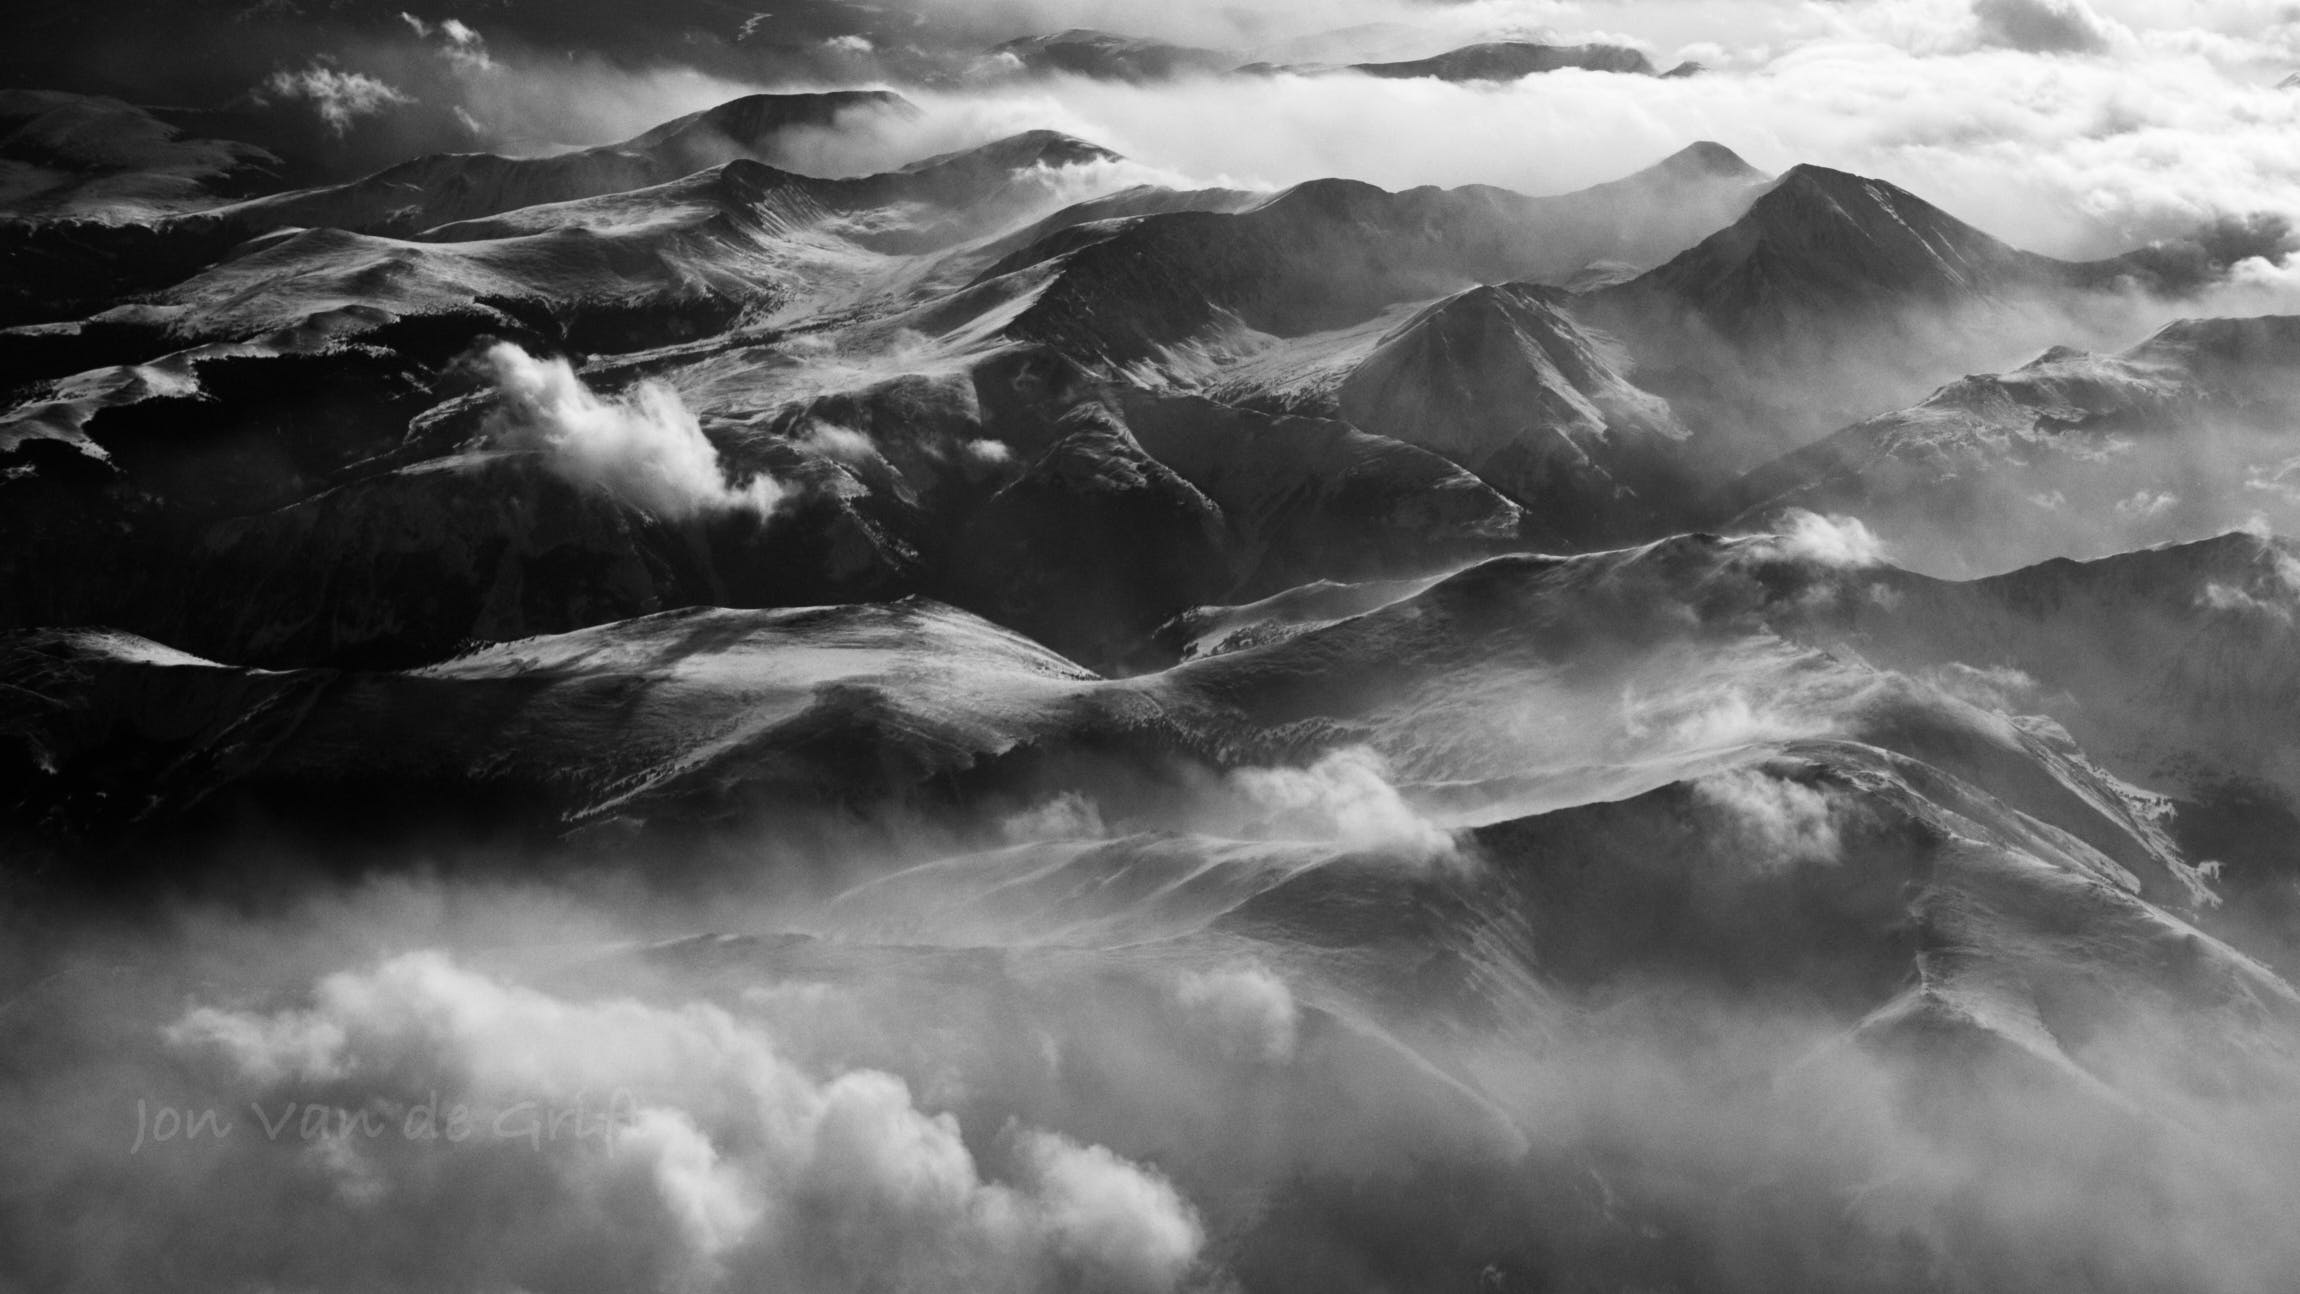 Black and white aerial photograph of shadow falling around a mountain range near sunset